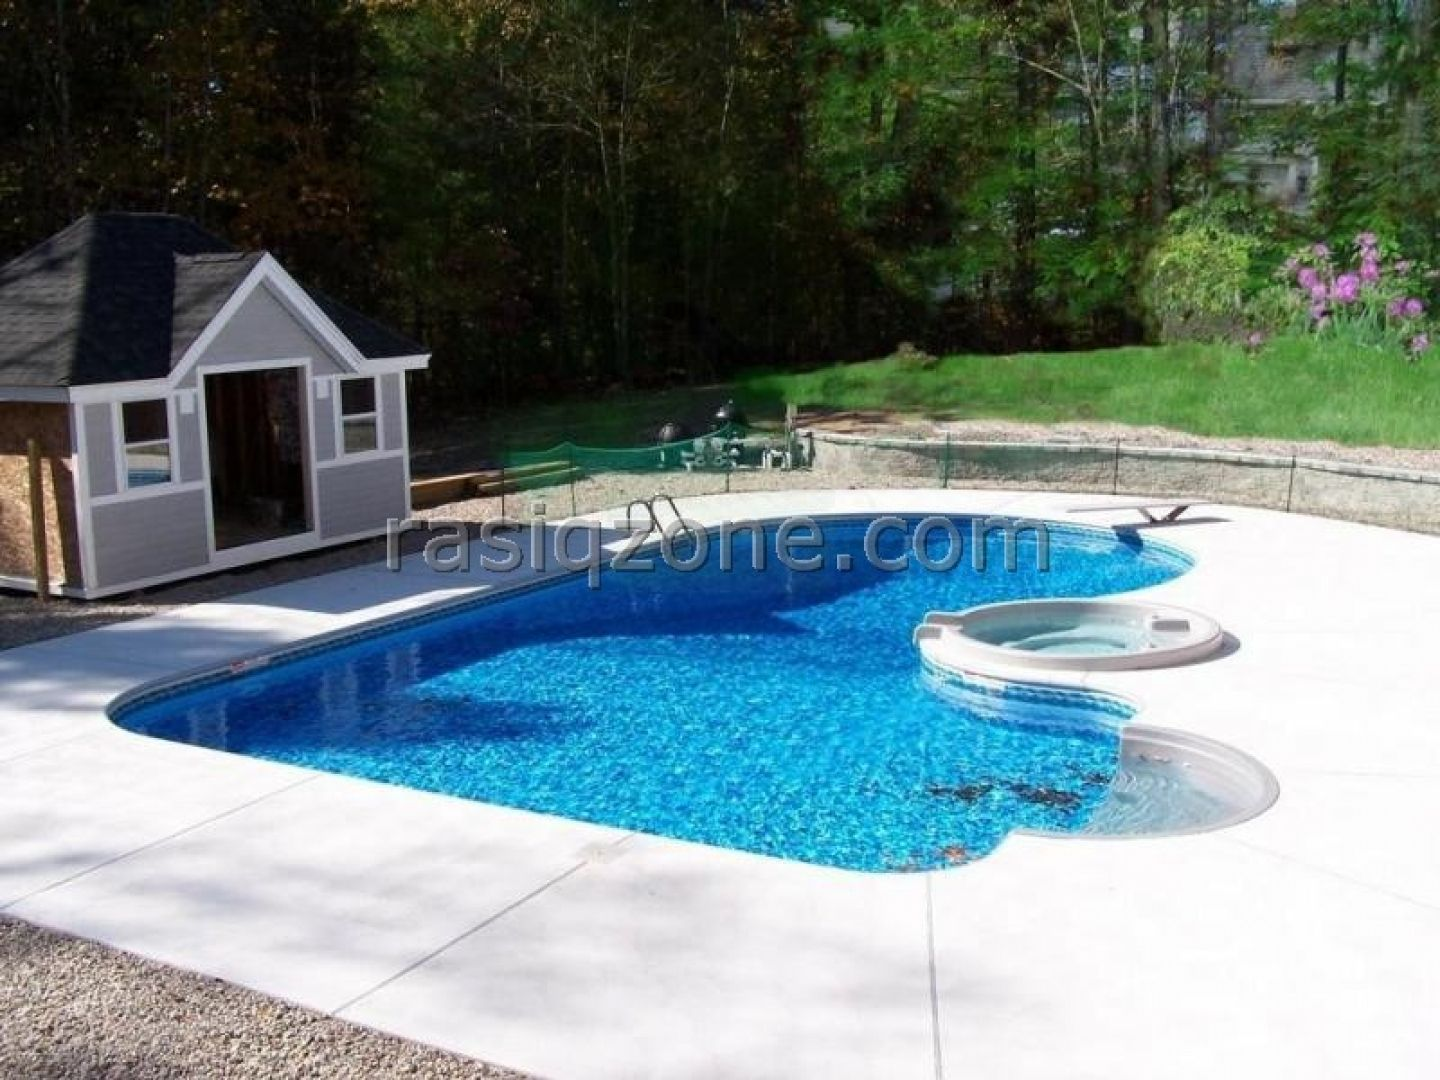 inground pools kids will love Pool Designs Backyard Swimming